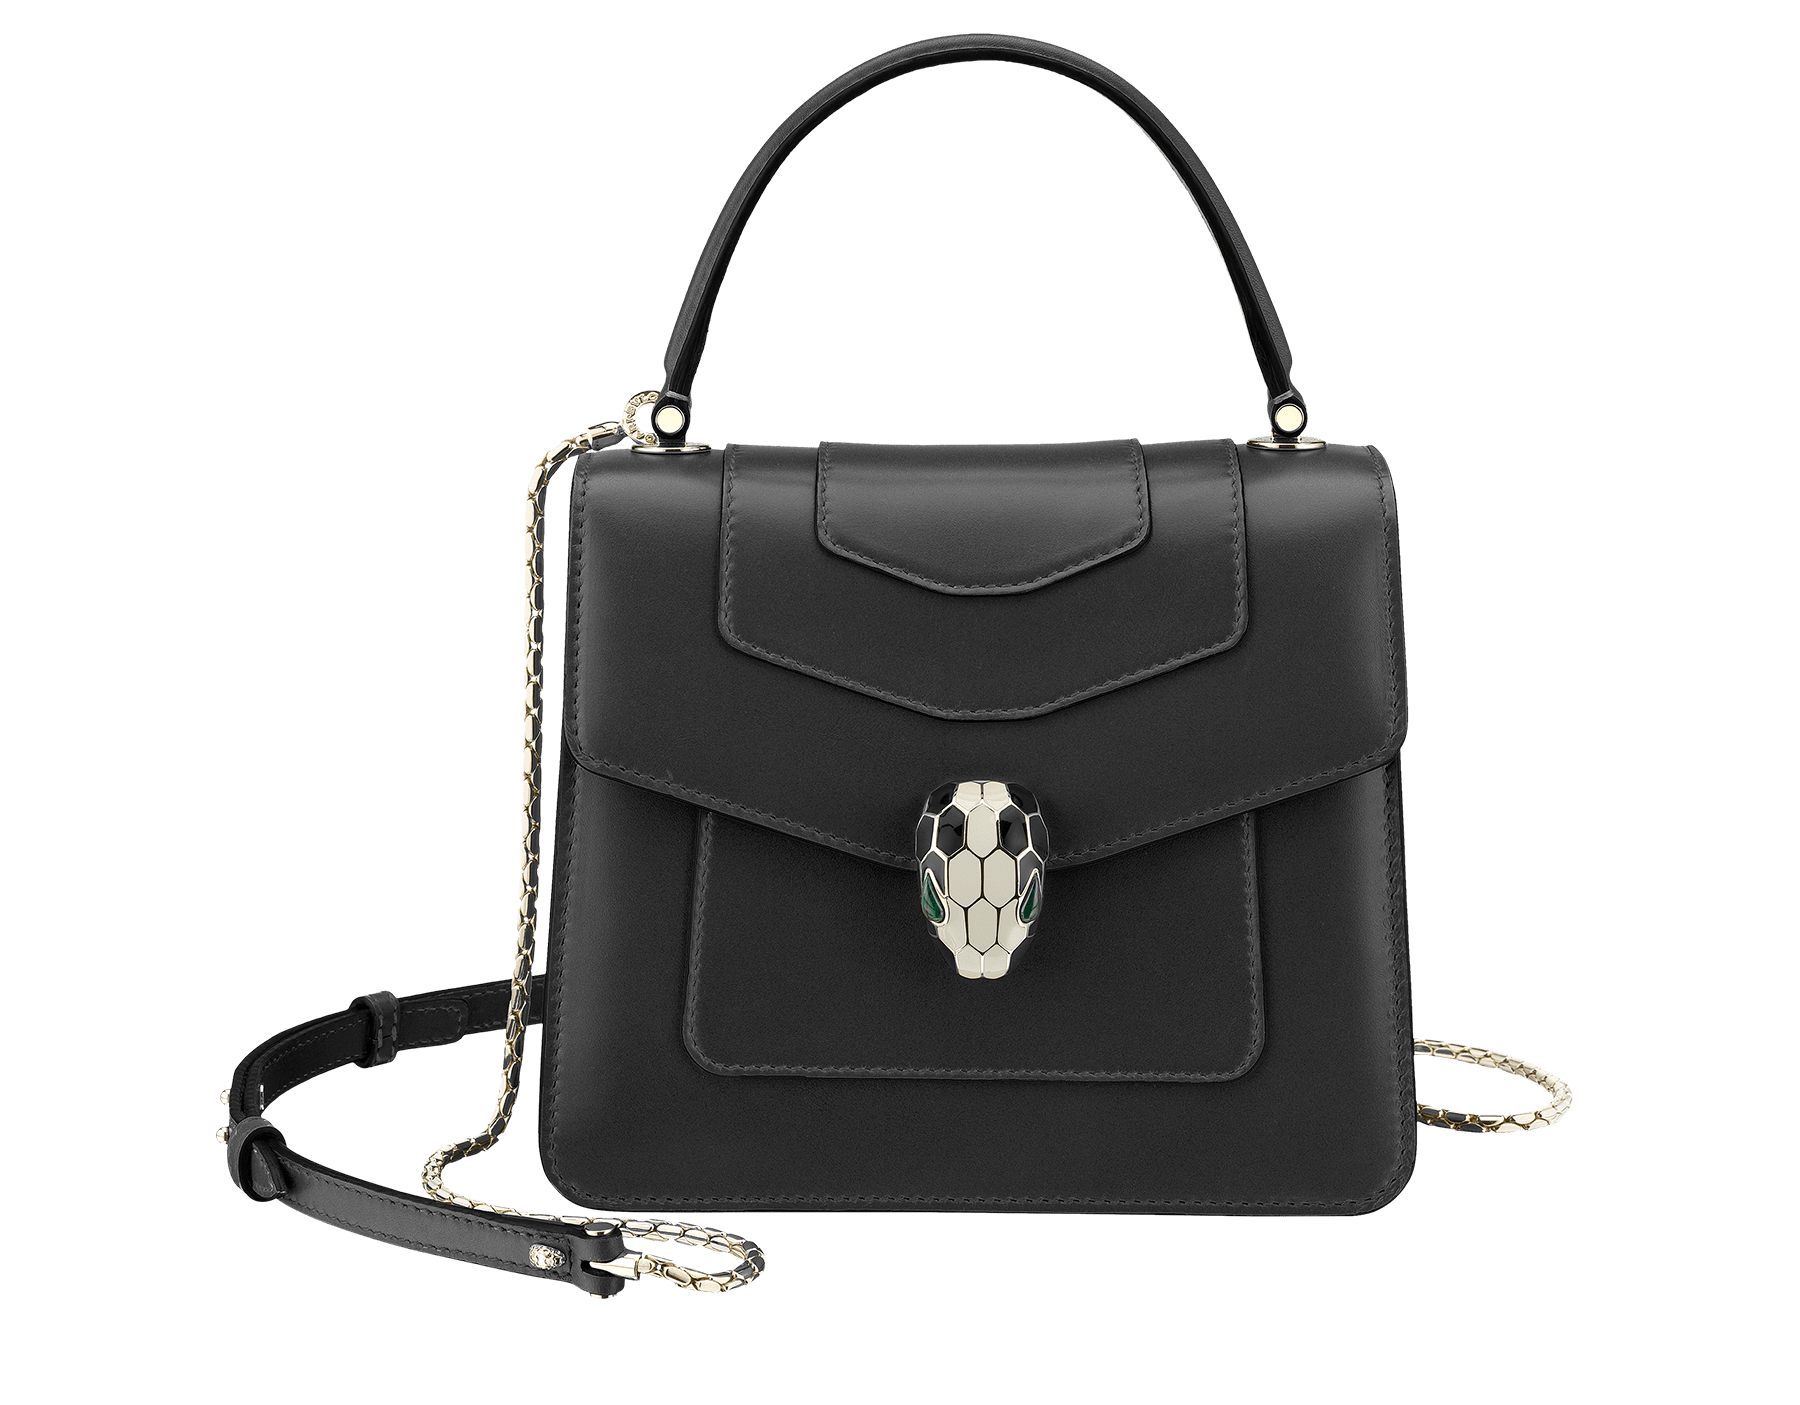 Flap cover bag Serpenti Forever in black calf leather and jade green gros-grain lining.Brass light gold plated hardware and snake head closure in black and white enamel with eyes in green malachite. 284537 image 1